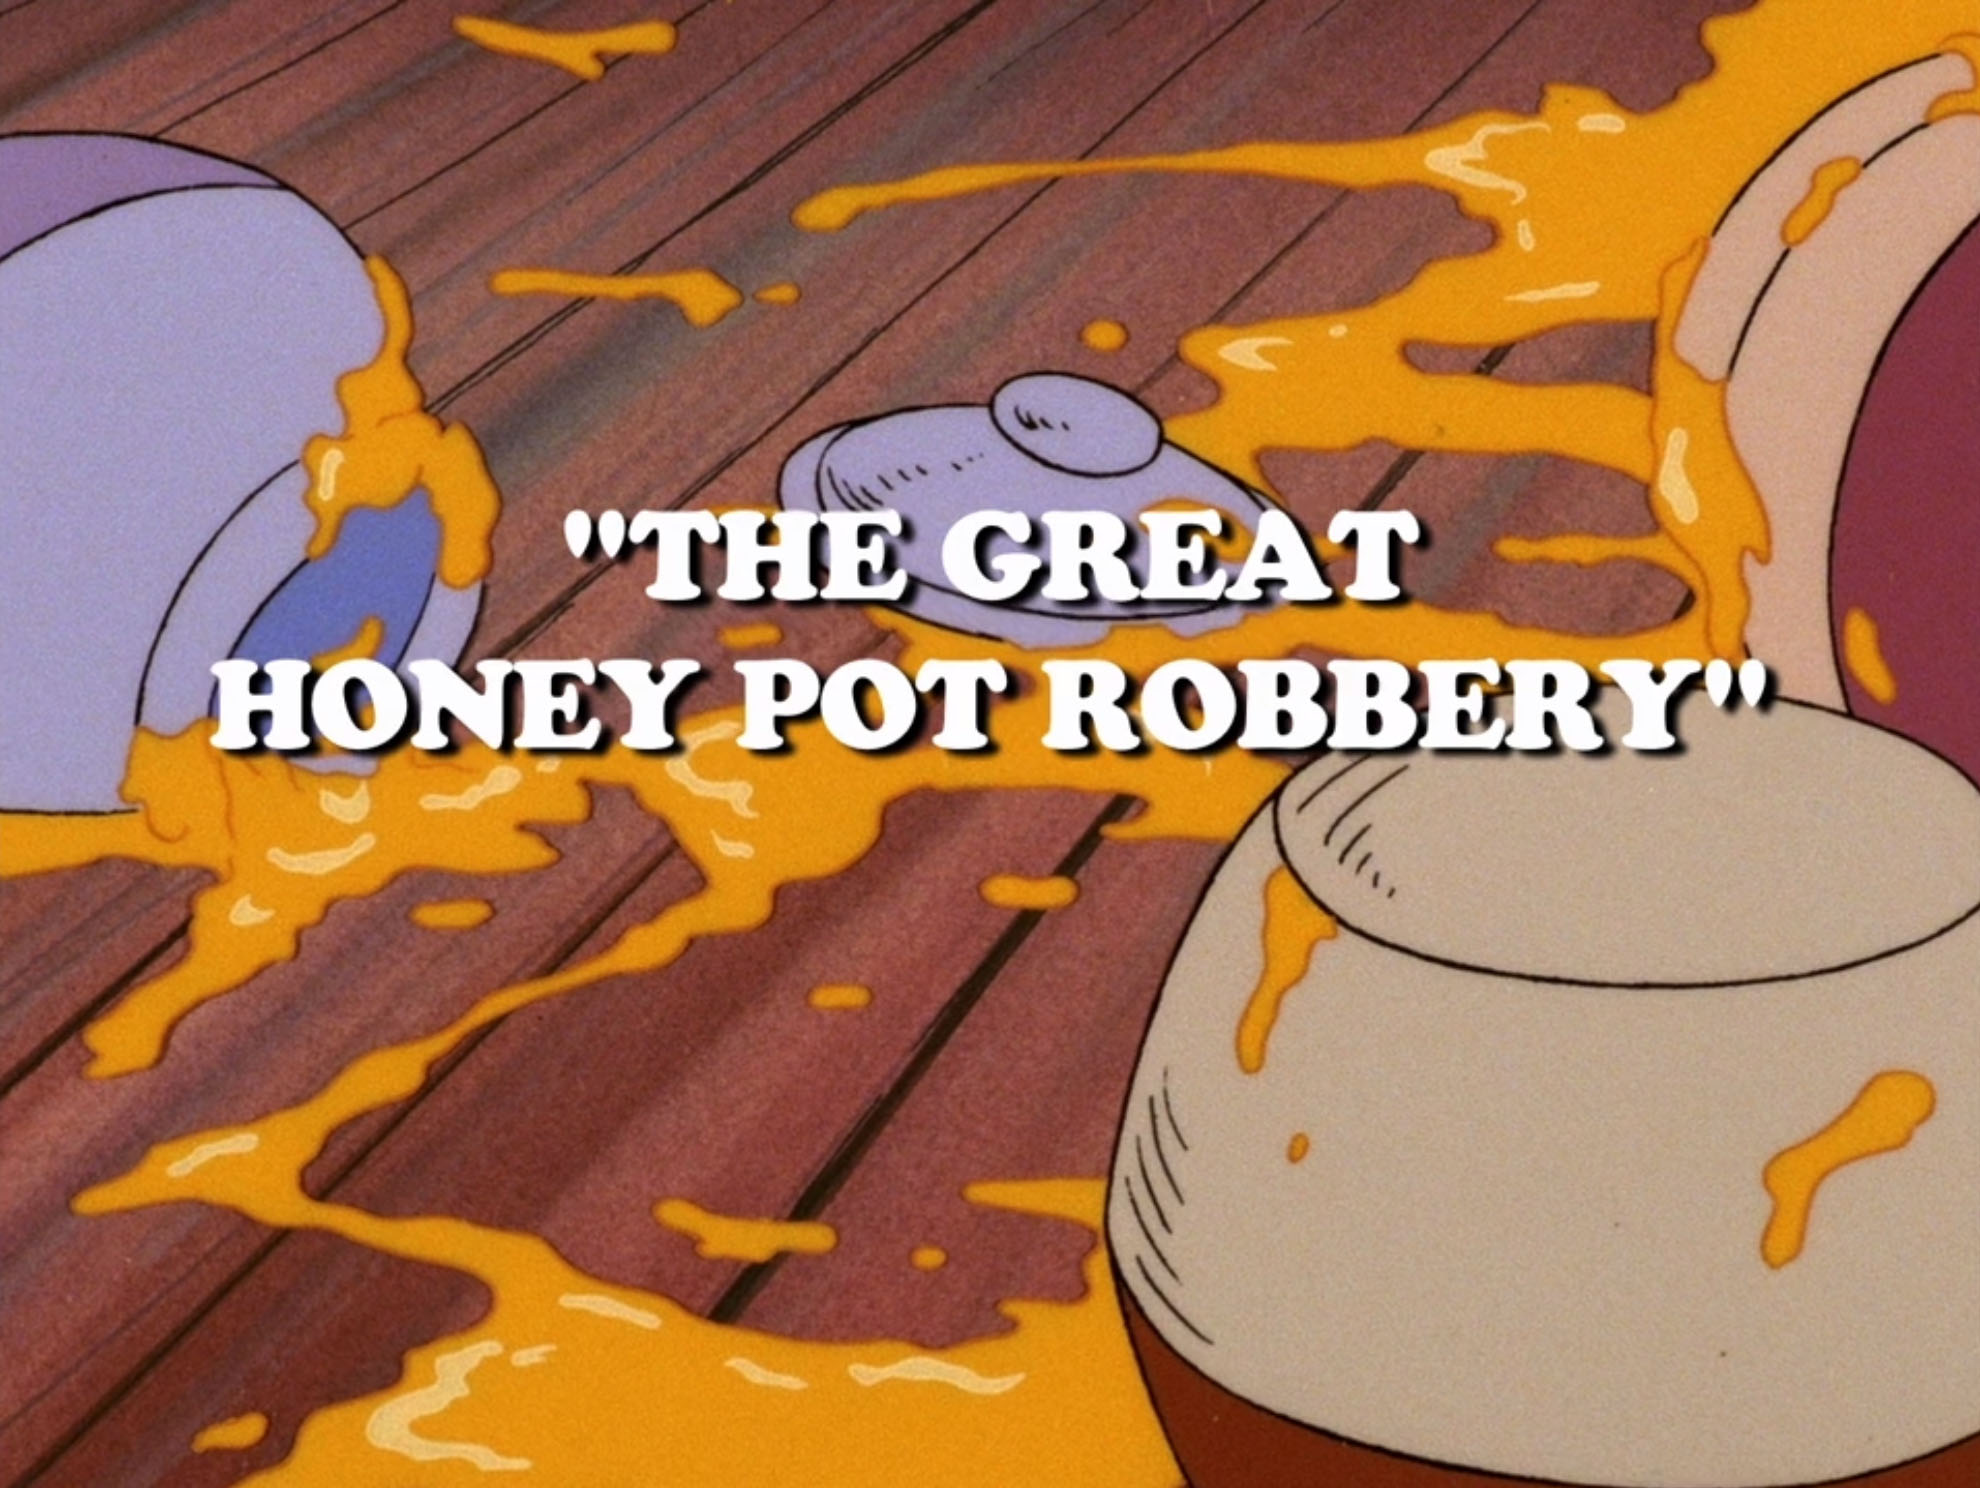 File:The Great Honey Pot Robbery.jpg